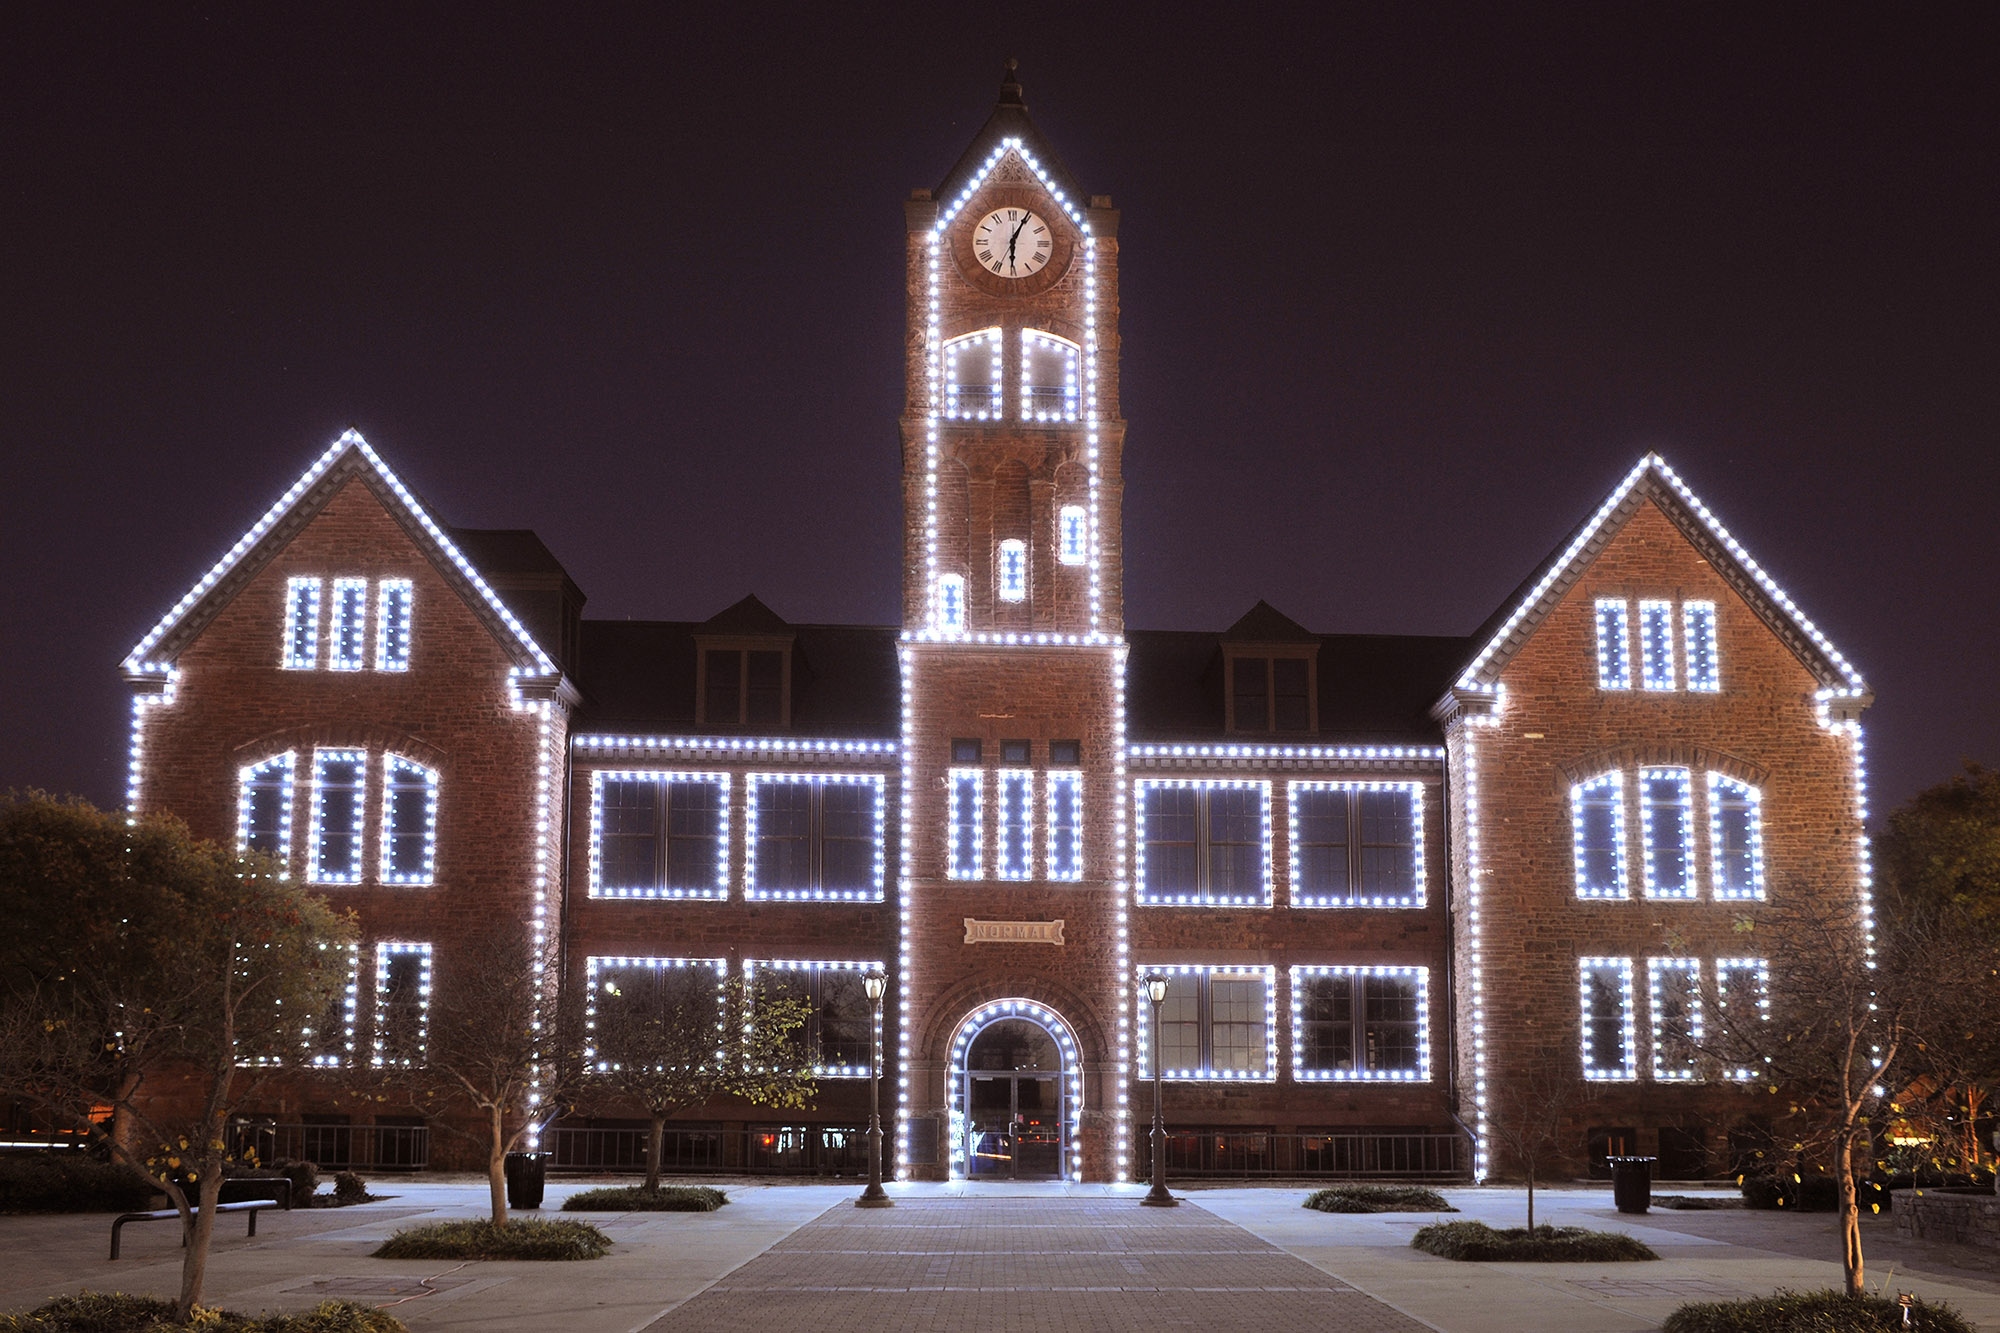 The community is invited to the UCO campus to kickoff the holiday season with the annual WinterGlow celebration from 6-9 p.m., Nov. 30.